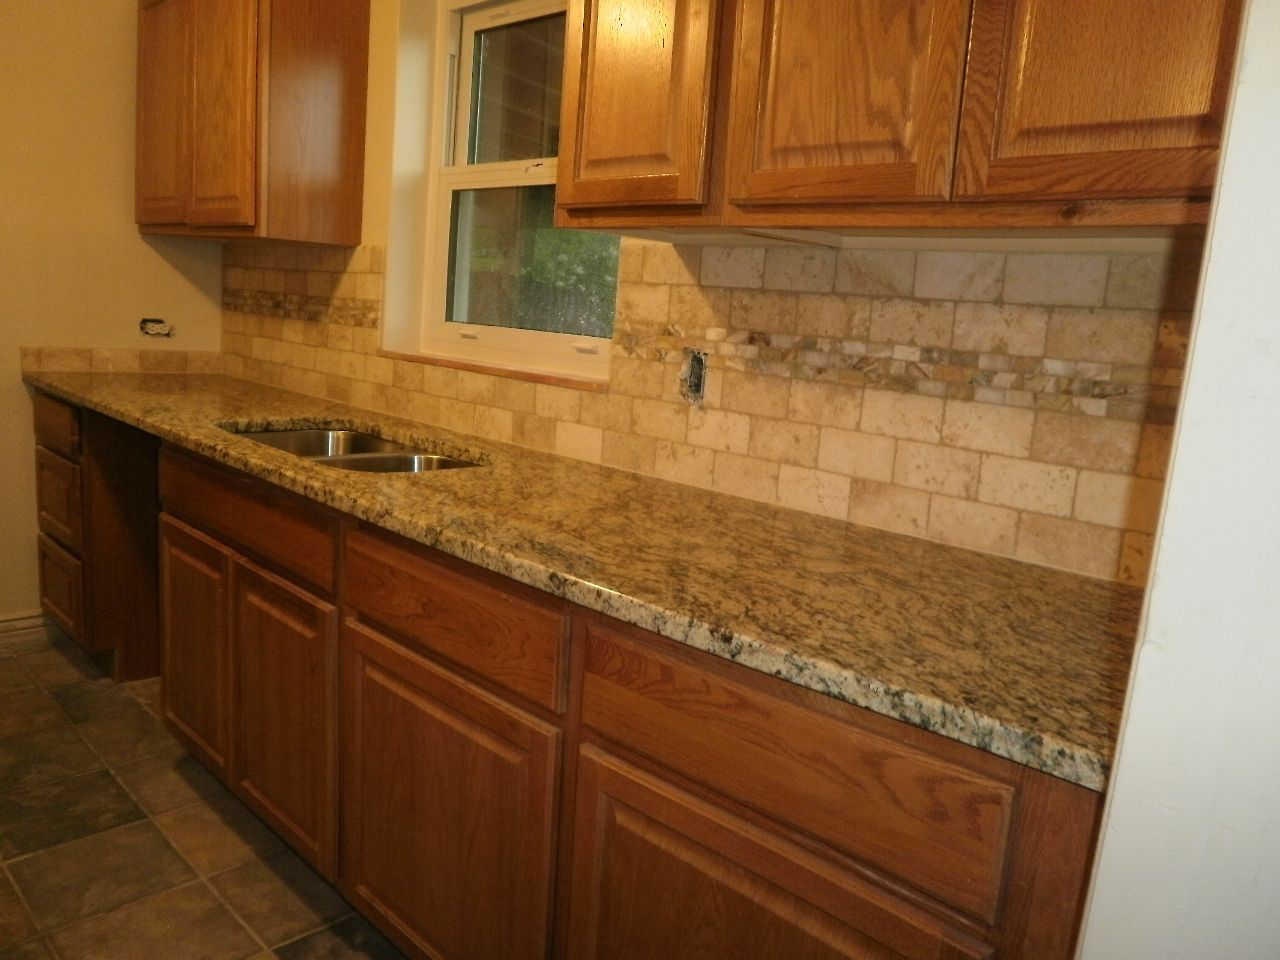 Kitchen Backsplash Pictures Ideas kitchen backsplash ideas | granite countertops backsplash ideas